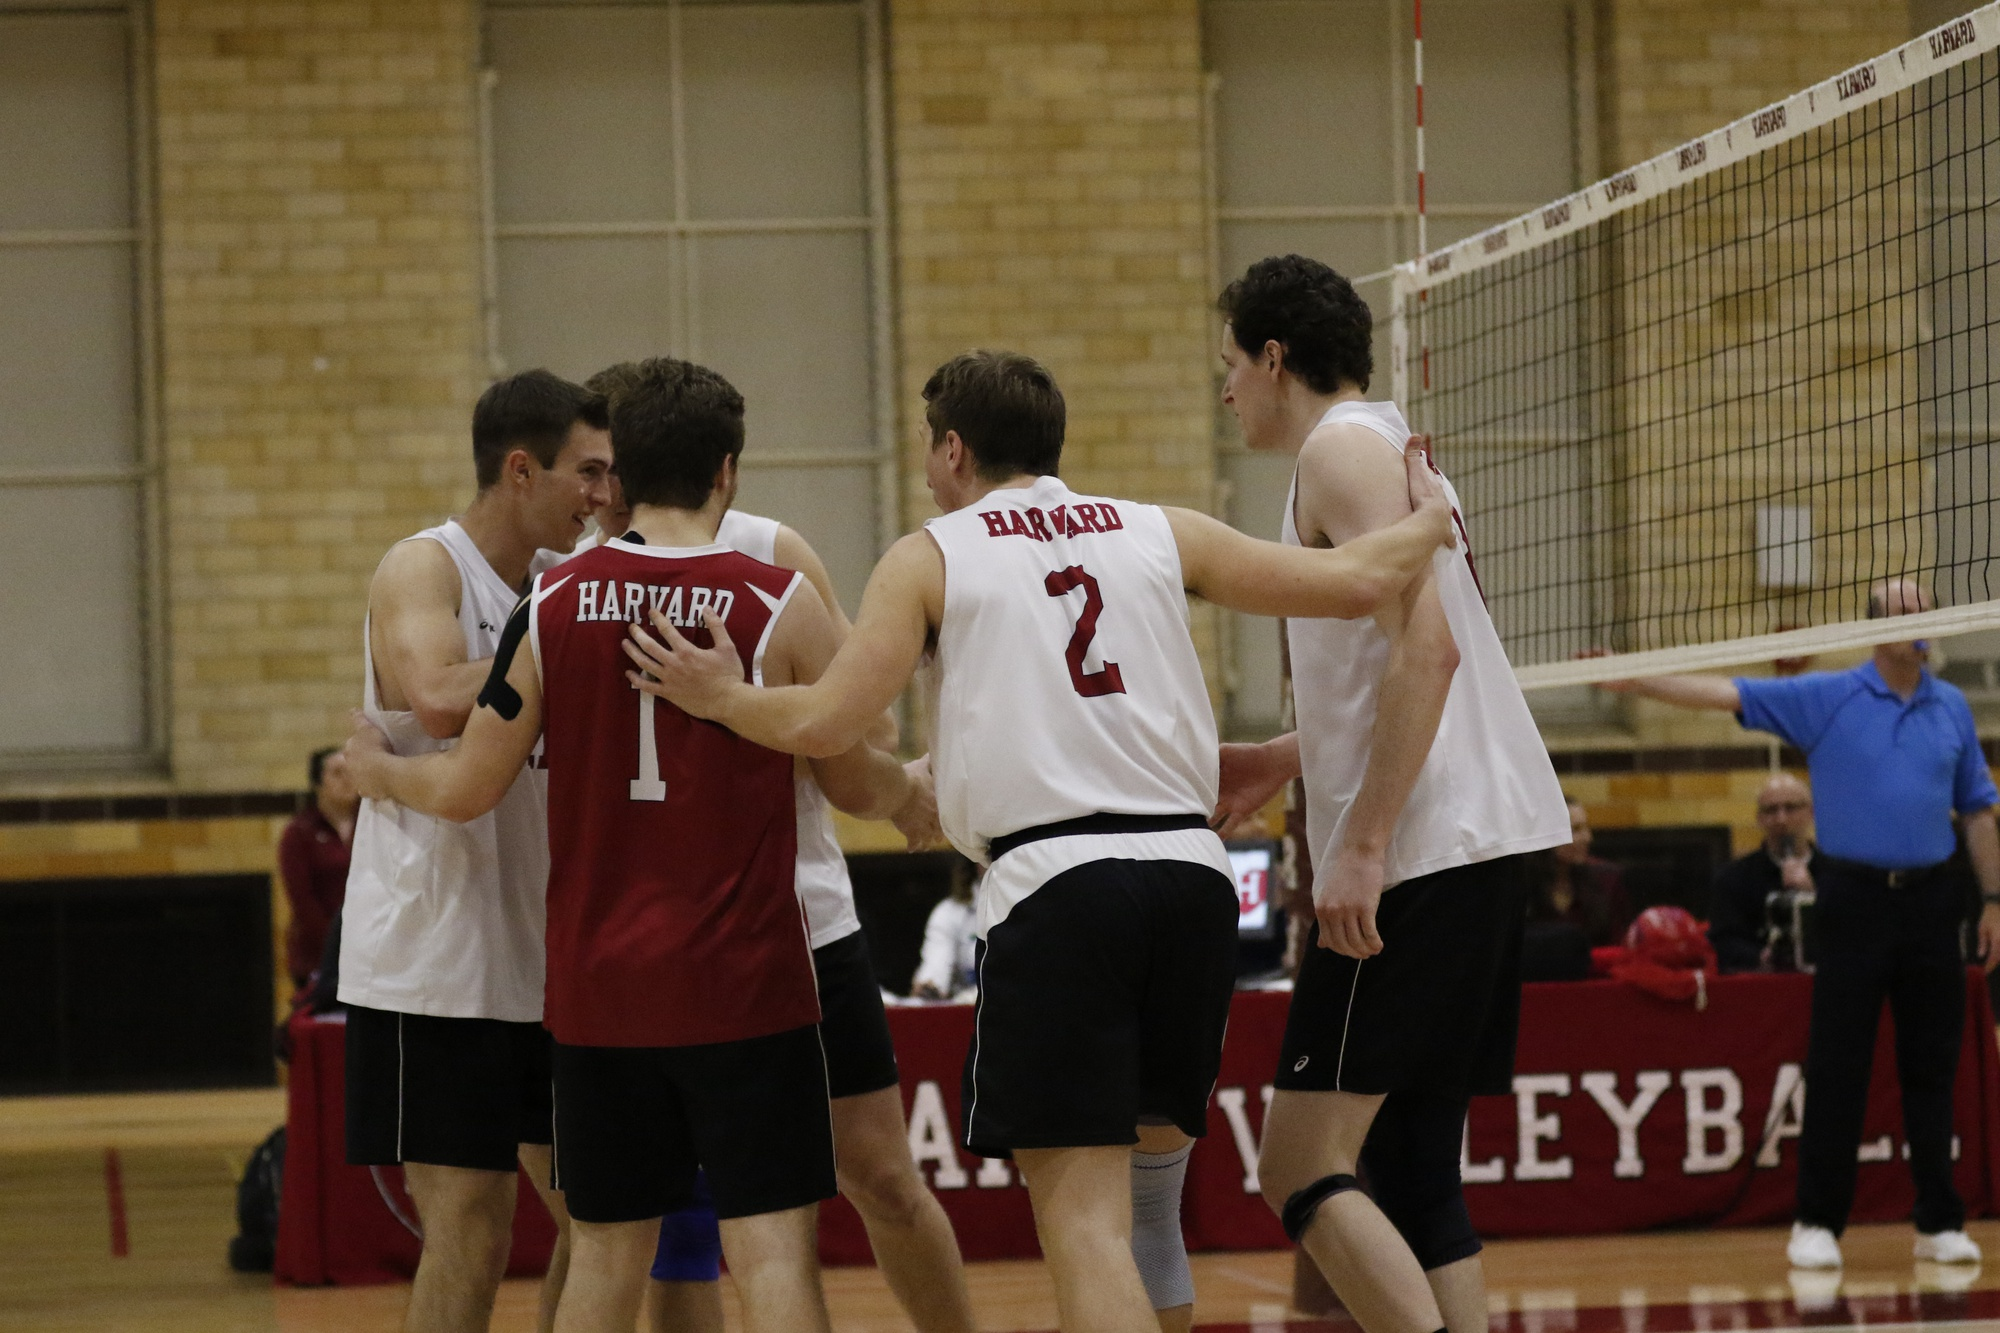 Senior setter Marko Kostich (2) and sophomore outside hitter Erik Johnsson (11) celebrate with their teammates after securing a point. Both players had seven kills on Thursday, with Kostich adding 22 assists.